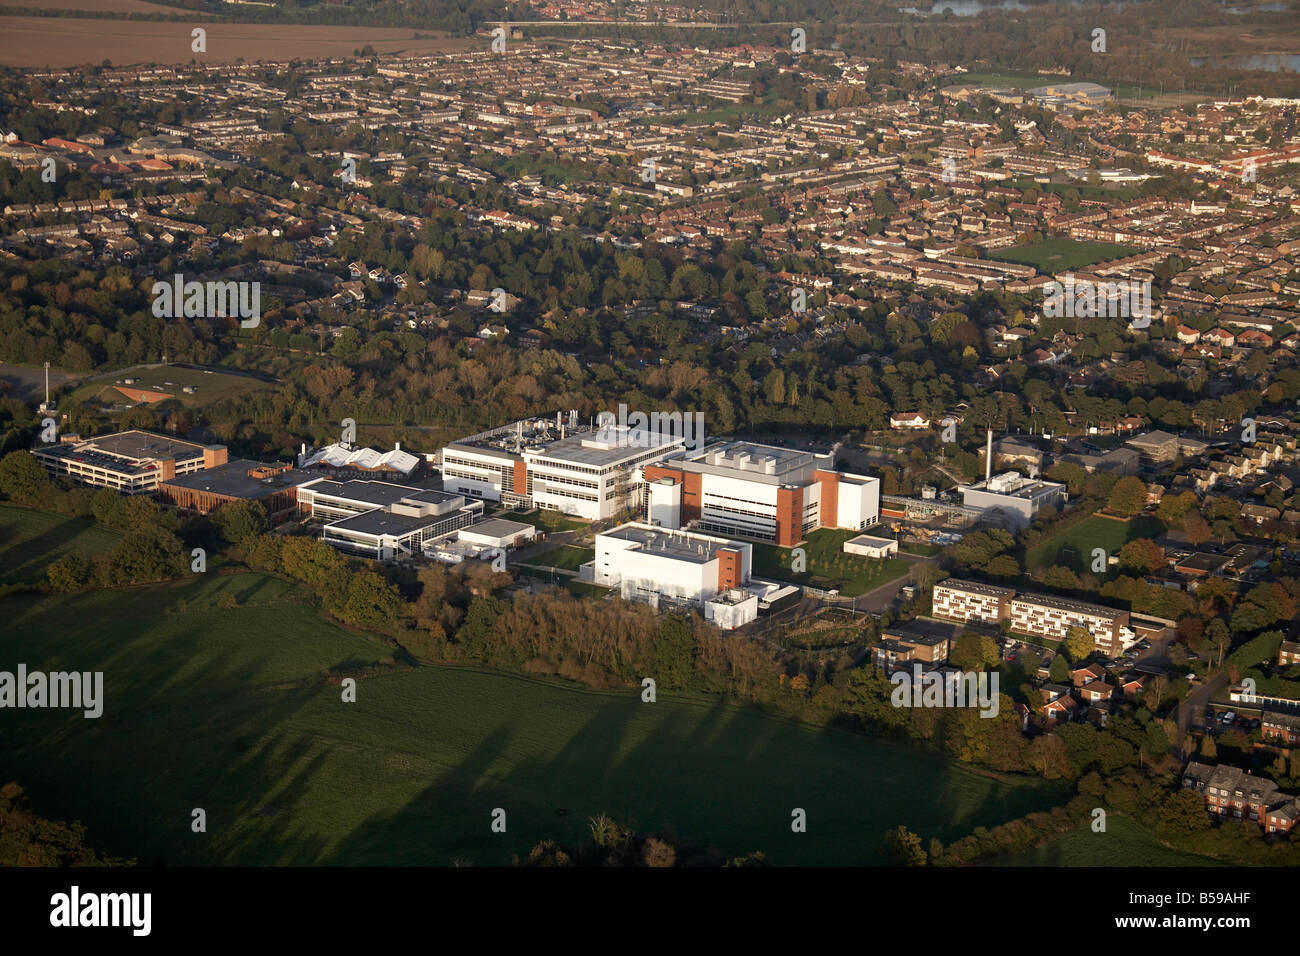 Aerial view south east industrial works Hertford Road Westfield JMR School suburban country fields Hoddesdon Hertfordshire - Stock Image